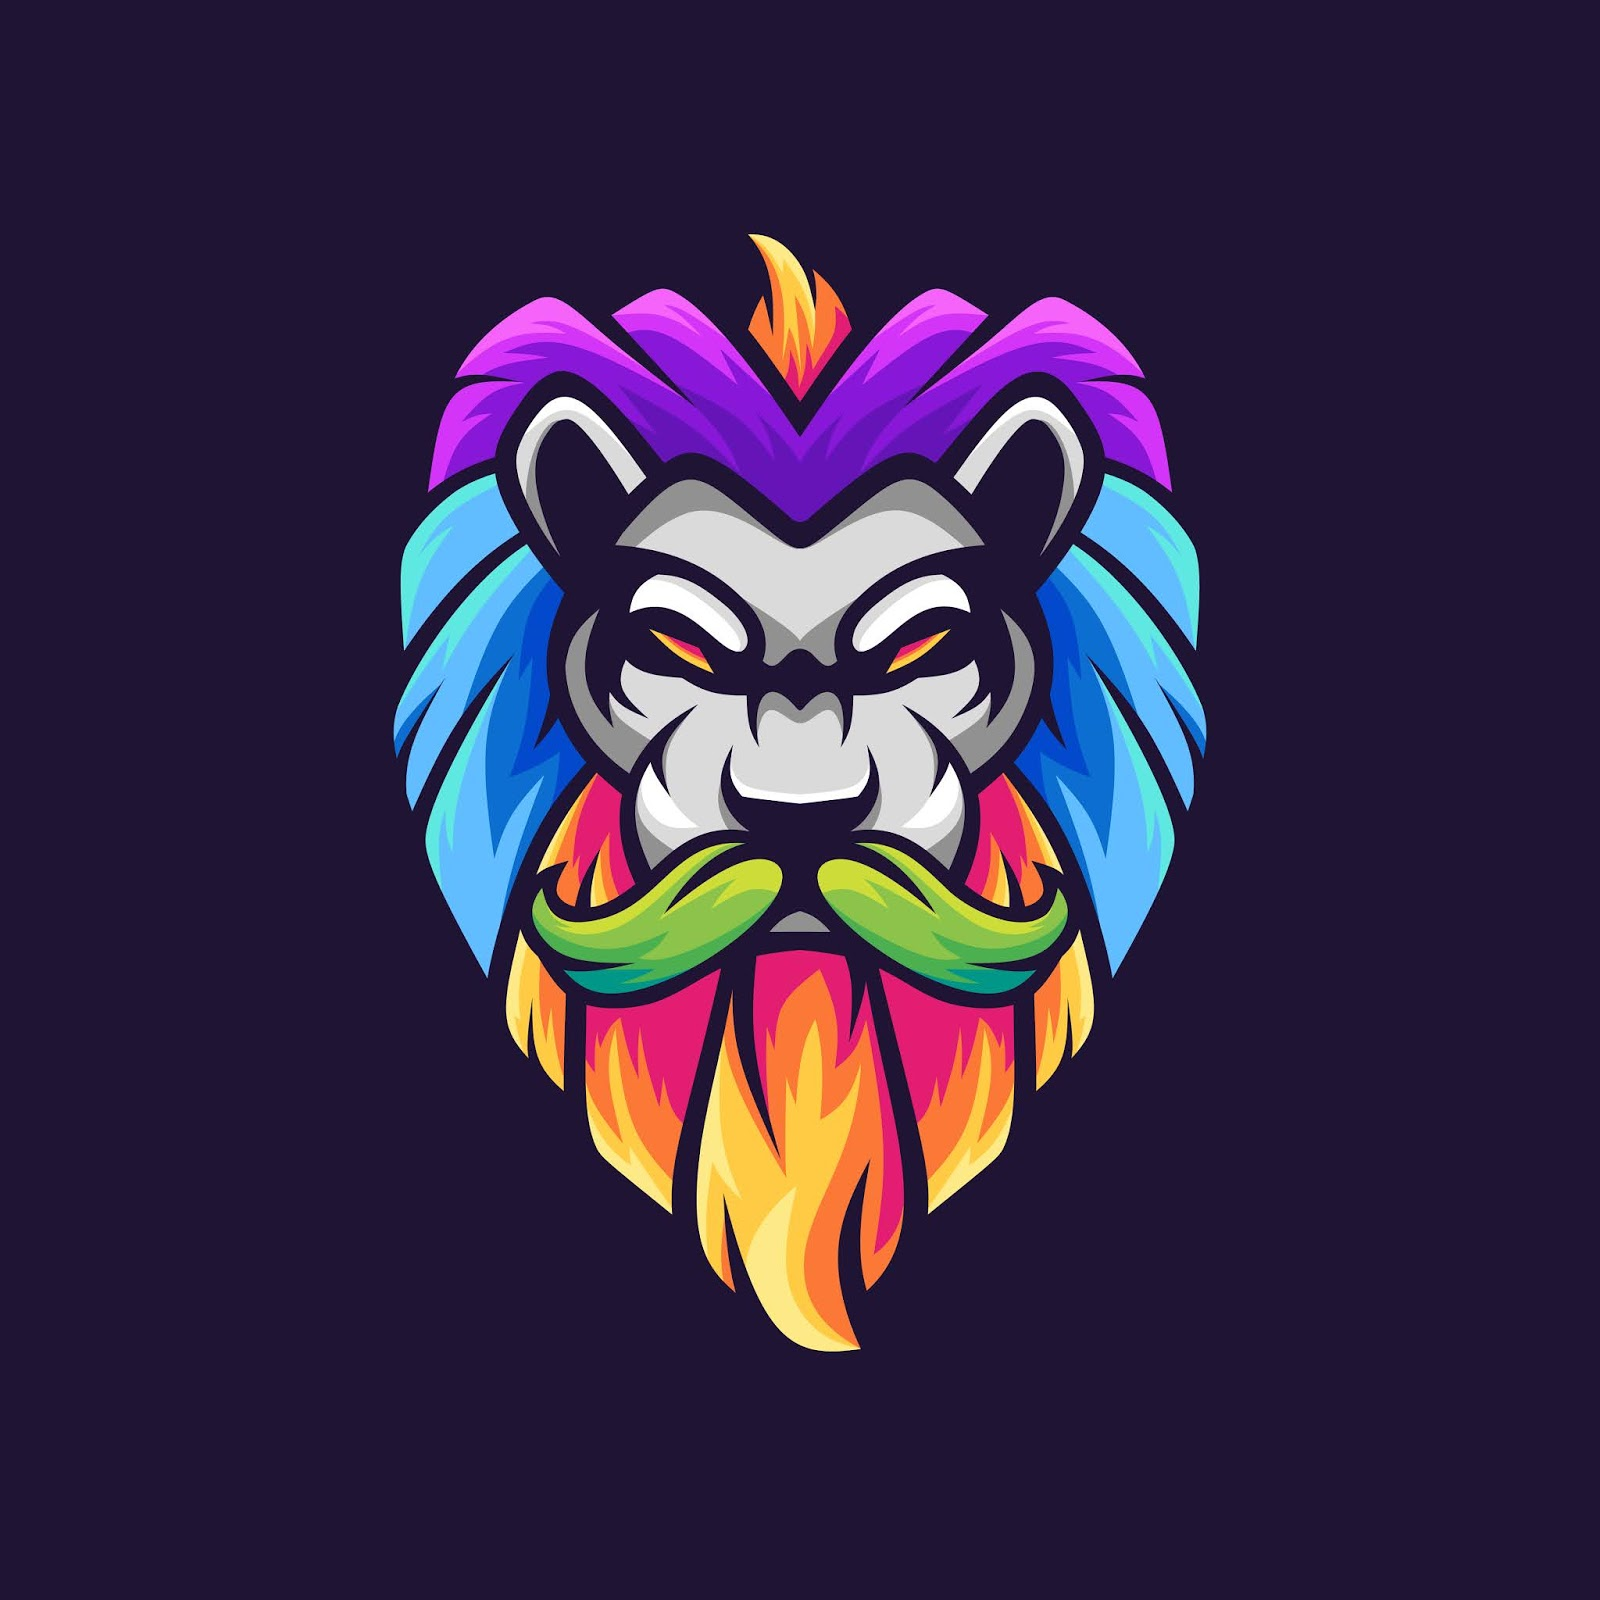 Lion With Mustache Colorful Mascot Logo Design Free Download Vector CDR, AI, EPS and PNG Formats